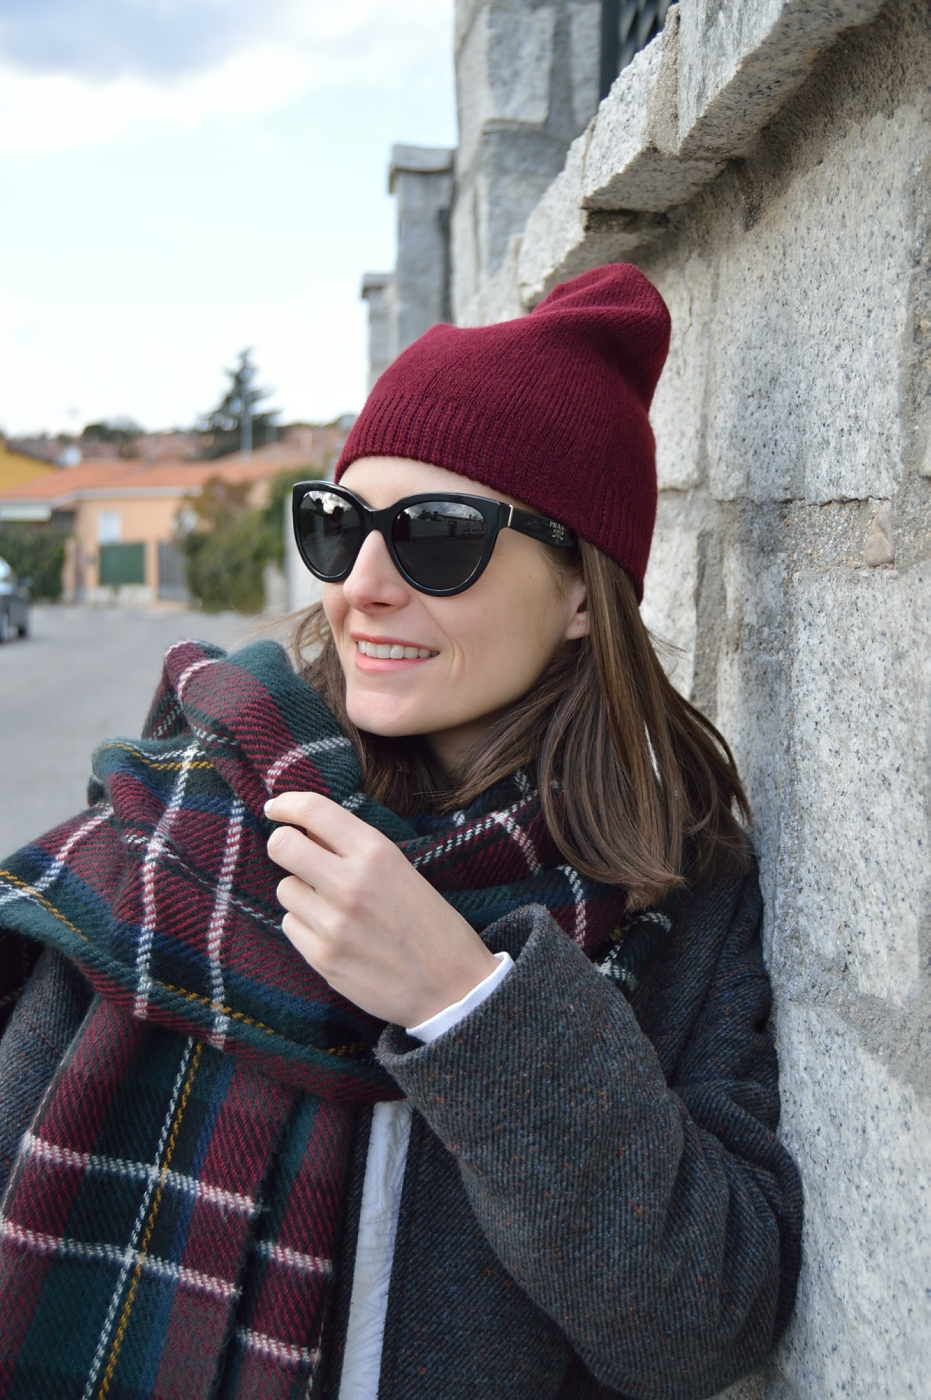 lara-vazquez-mad-lula-style-ootd-fashion-beanie-winter-burgundy